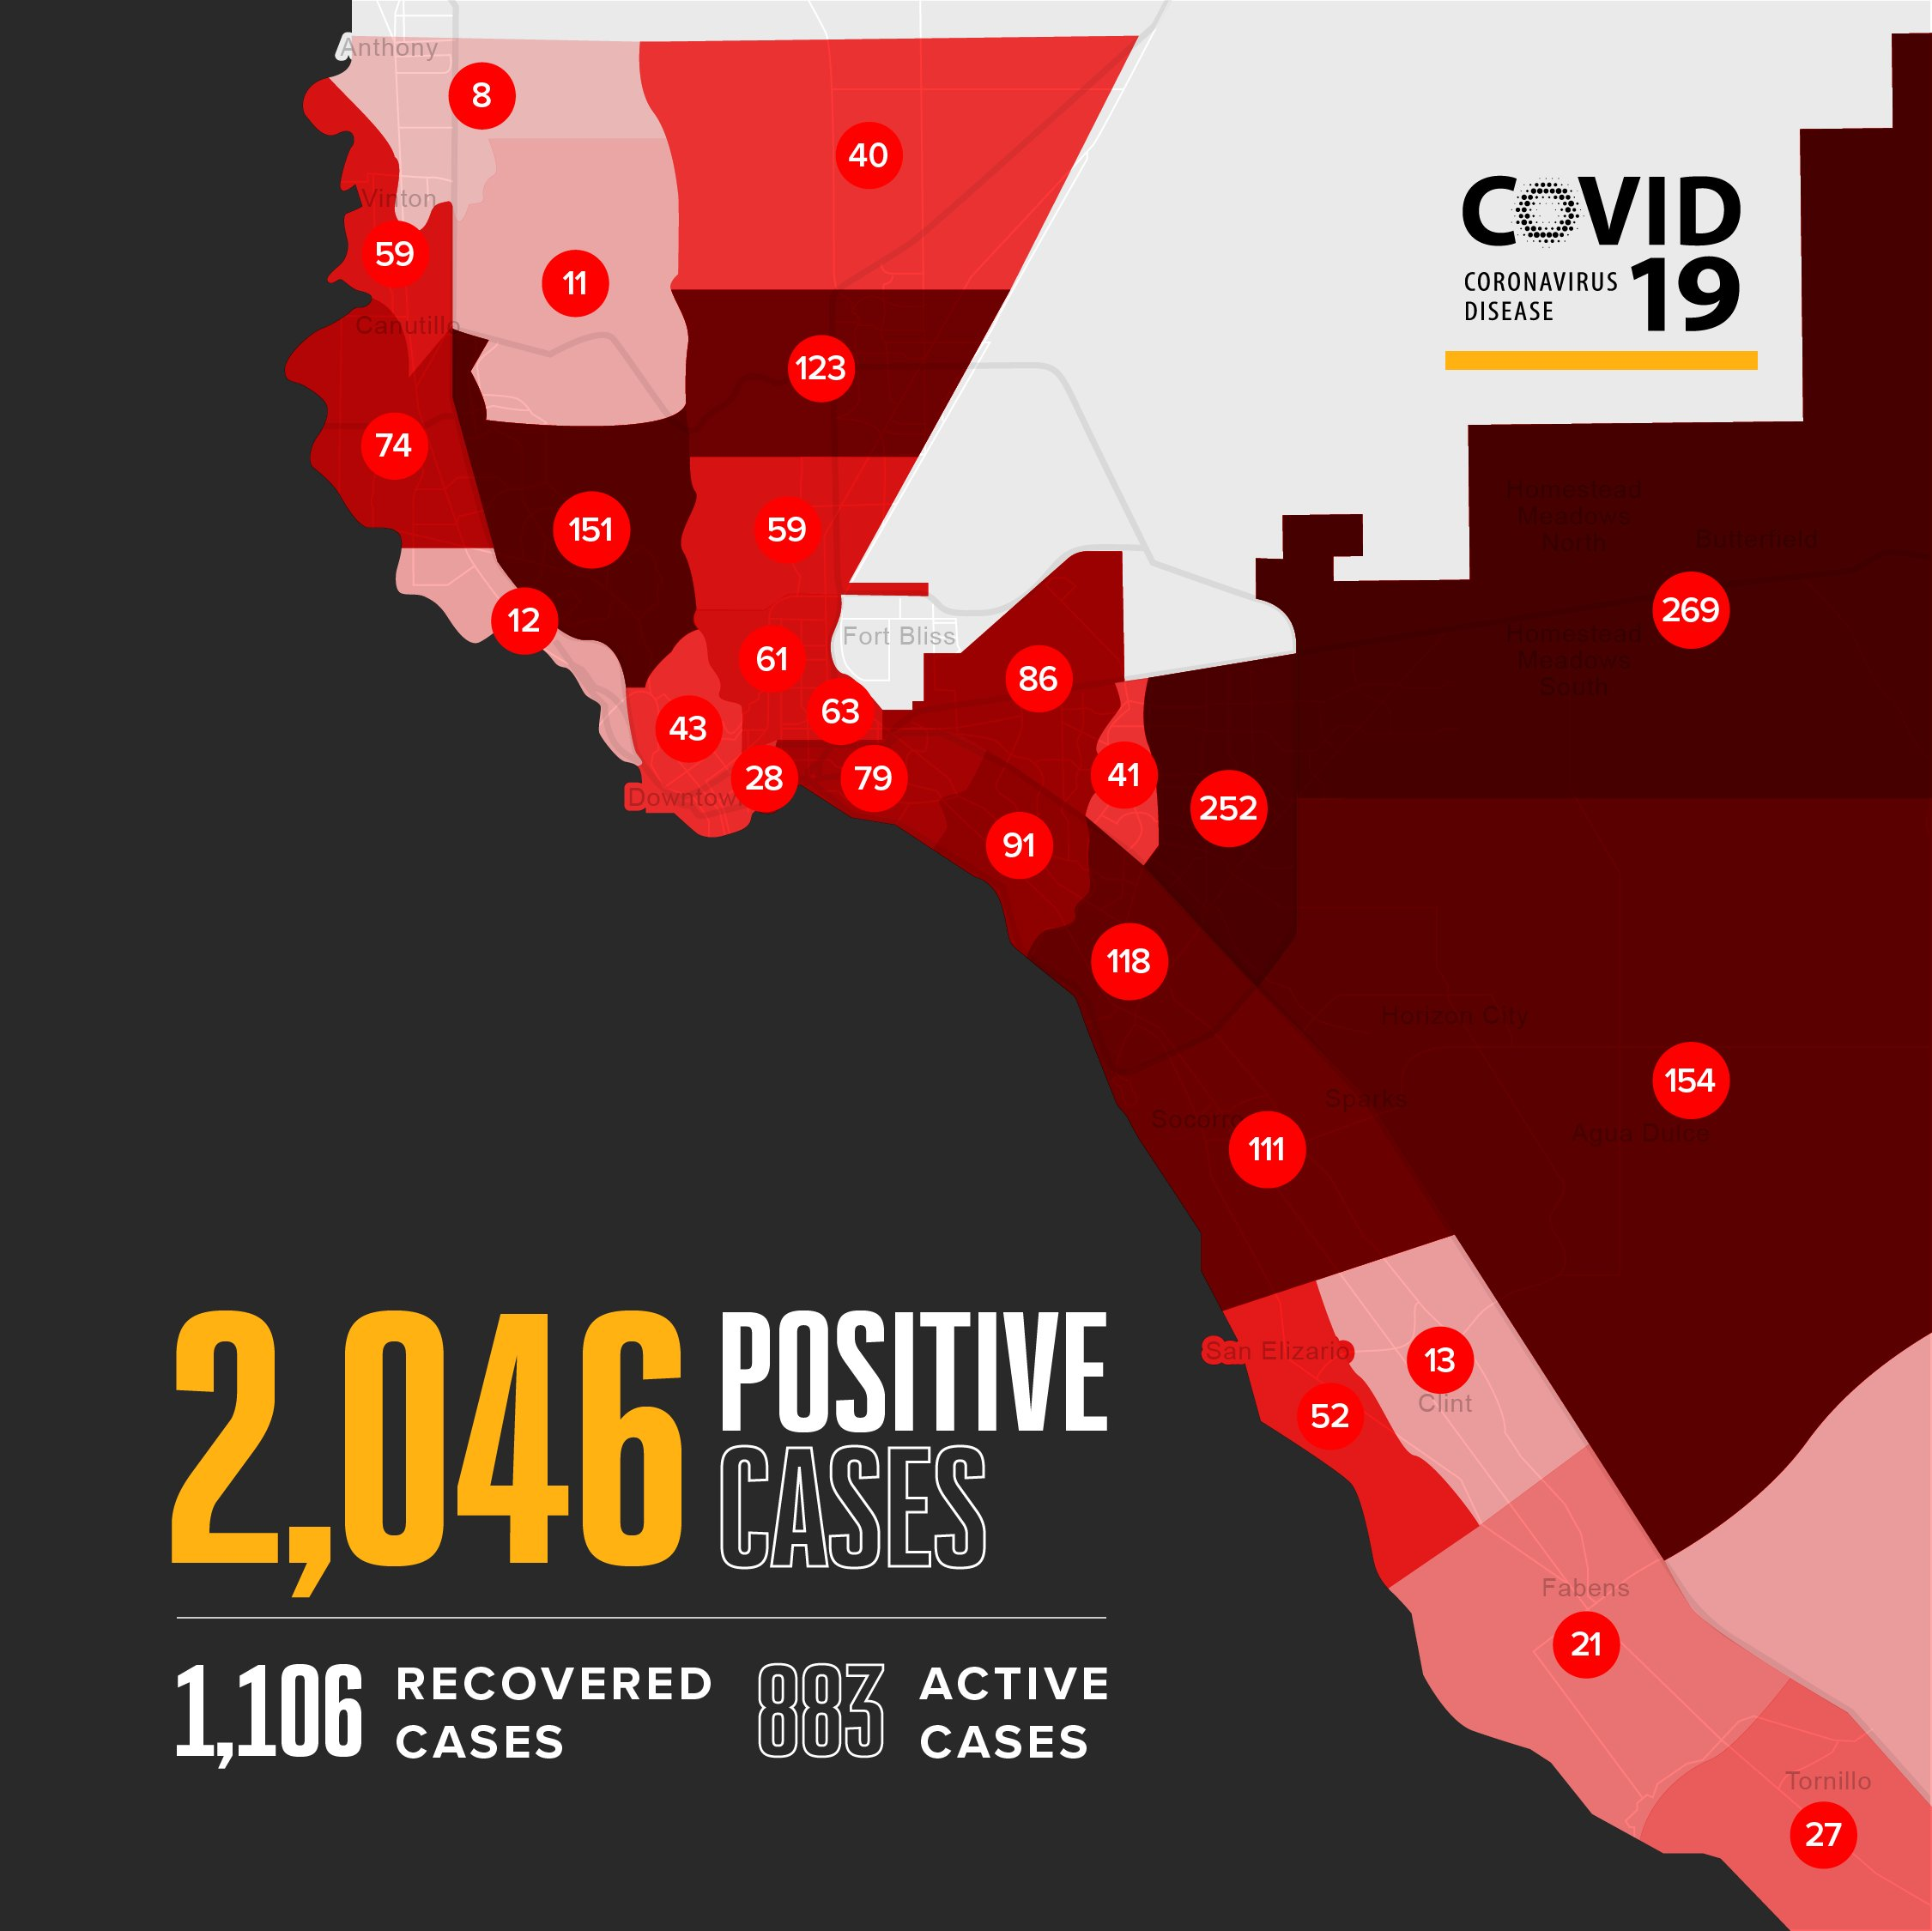 The map above shows the amount of positive COVID-19 cases by ZIP codes and the number of cases in parenthesis: 79821 (8), 79835 (59), 79836 (13), 79838 (21), 79849 (52), 79853 (27), 79901 (28), 79902 (43), 79903 (63), 79904 (59), 79905 (79), 79907 (118), 79911 (11), 79912 (151), 79915 (91), 79922 (12), 79924 (123), 79925 (86), 79927 (111), 79928 (154), 79930 (61), 79932 (74), 79934 (40), 79935 (41), 79936 (252), 7993